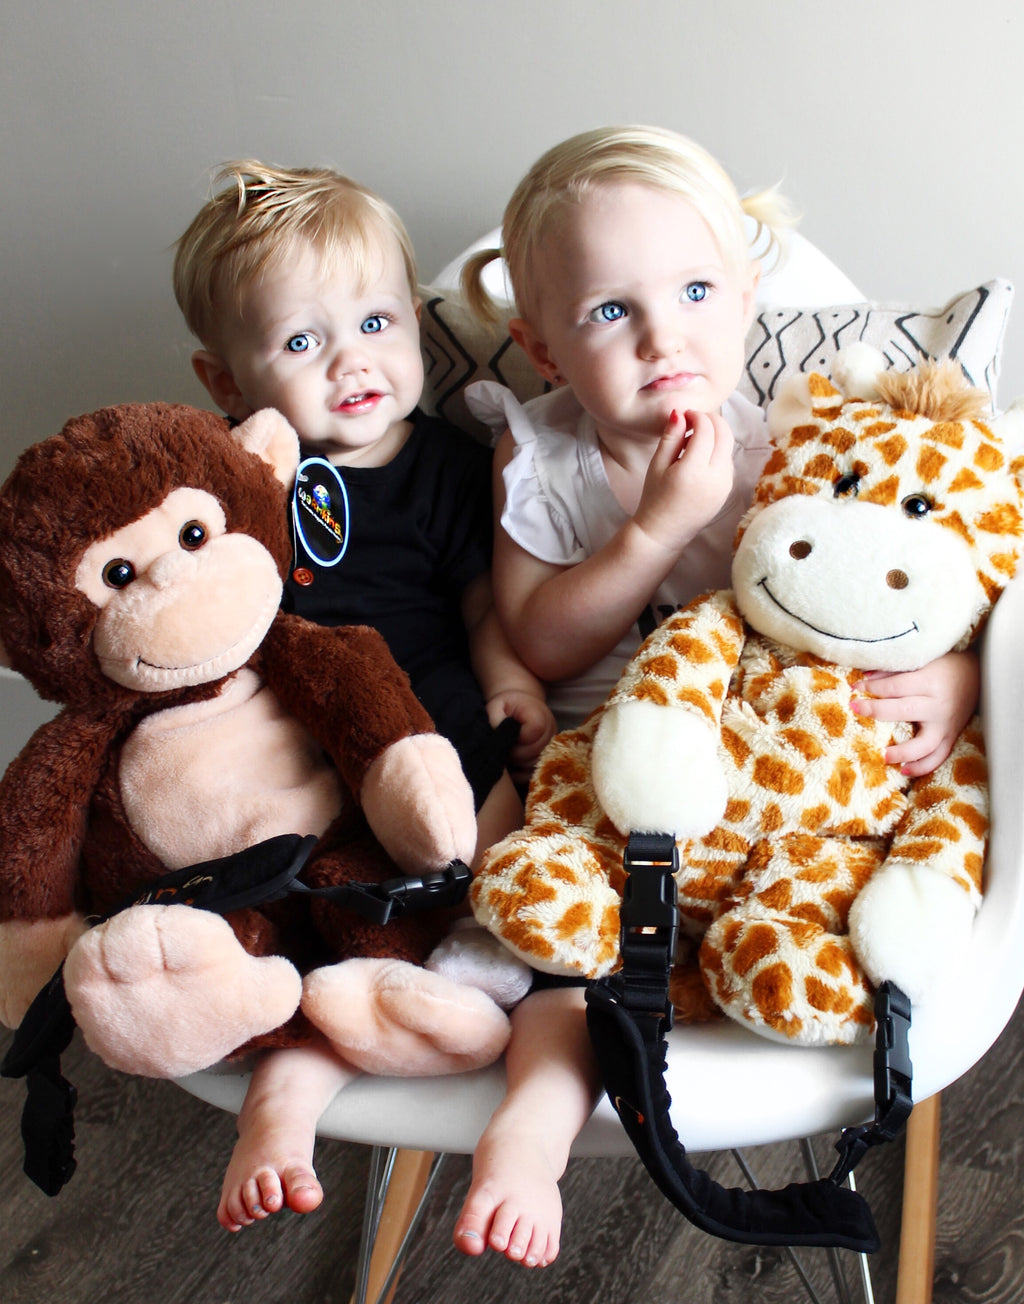 Warmkins Hugo Monkey, Winston Giraffe Adorable Blue eyed children snuggle up therapeutic weighted sensory plush stuffed animals microwavable healing hugs